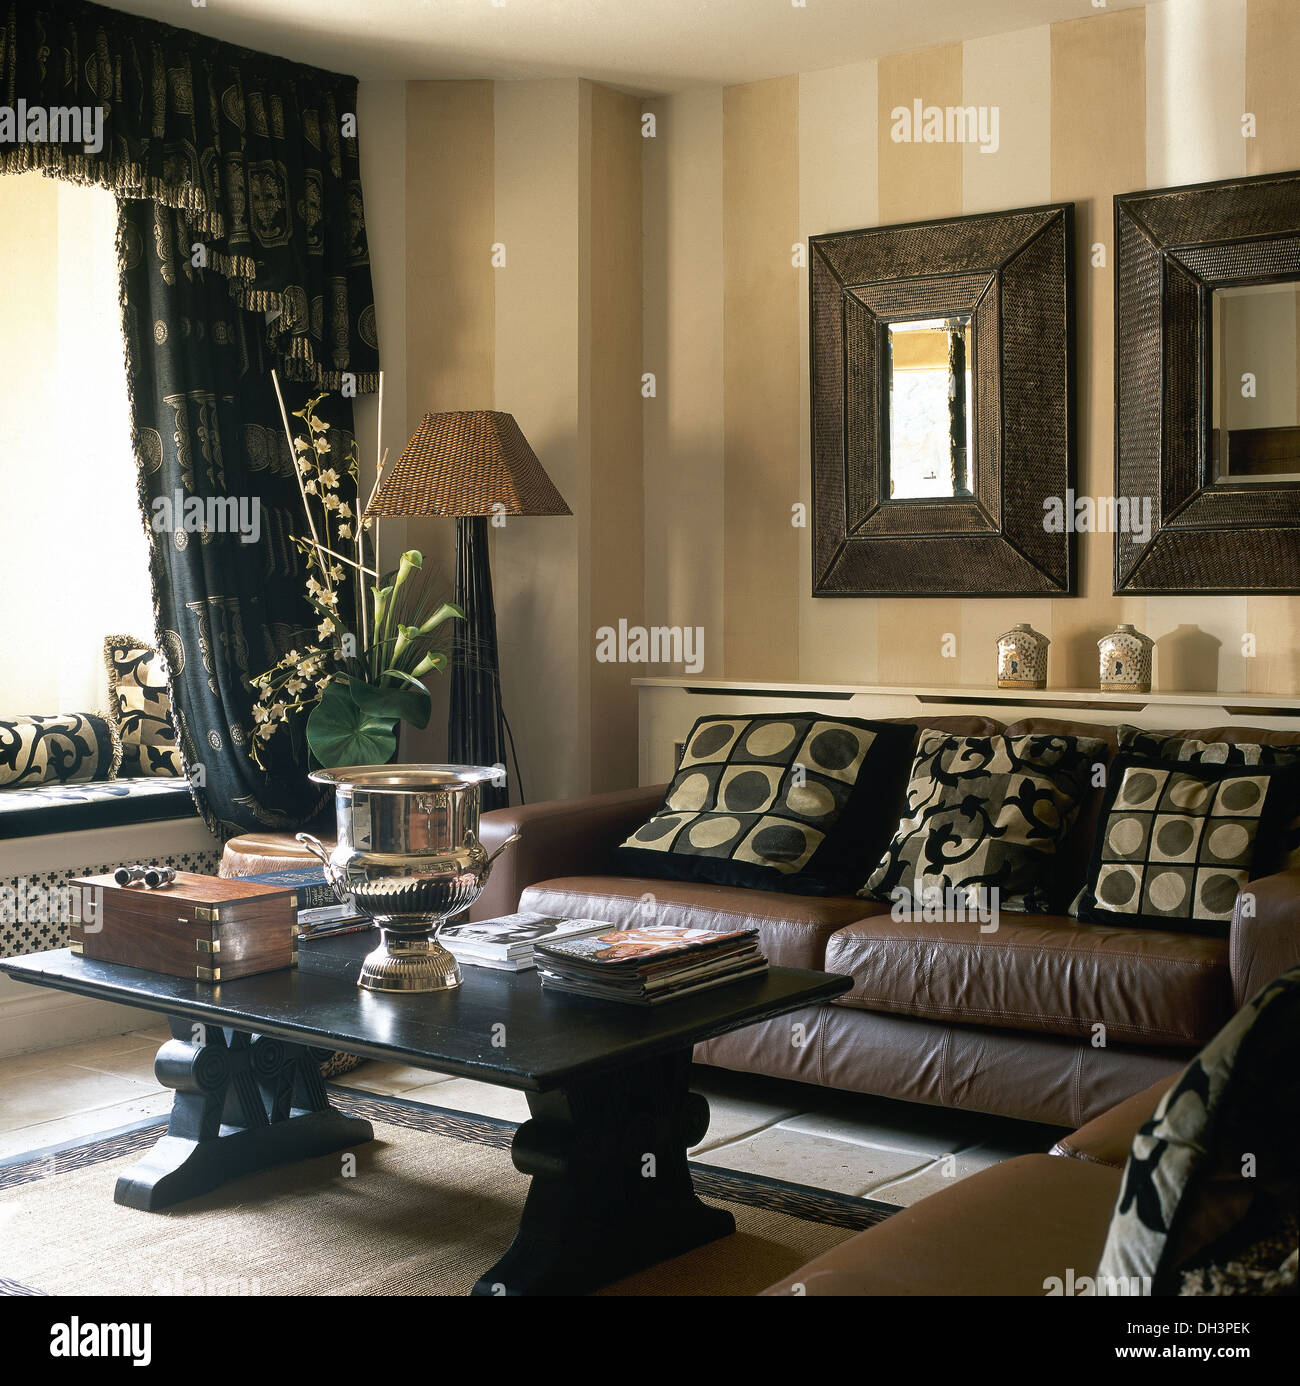 mirrors drapes soft furnishings stockfotos mirrors drapes soft furnishings bilder alamy. Black Bedroom Furniture Sets. Home Design Ideas